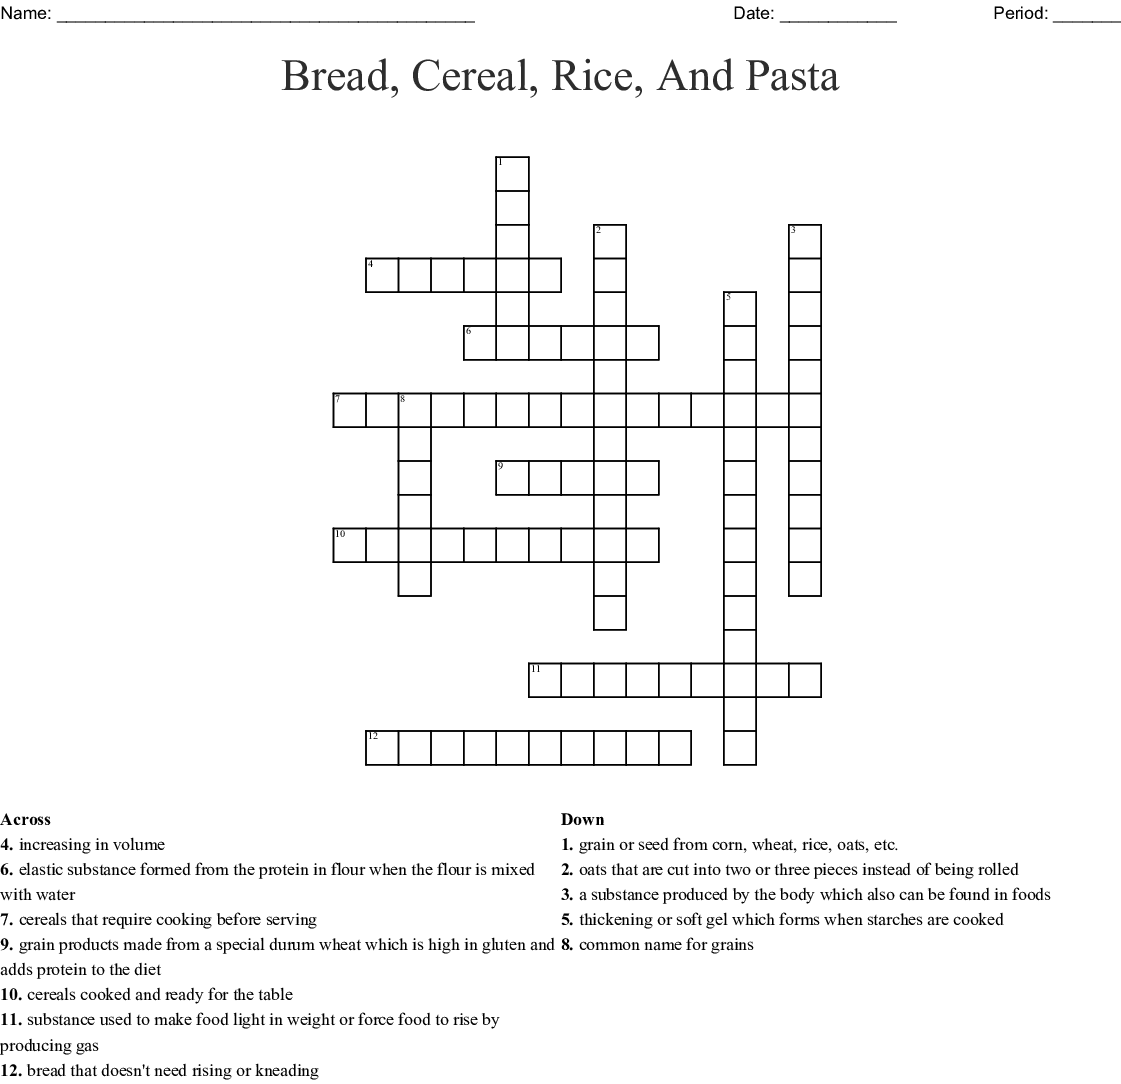 Bread Cereal Rice And Pasta Crossword